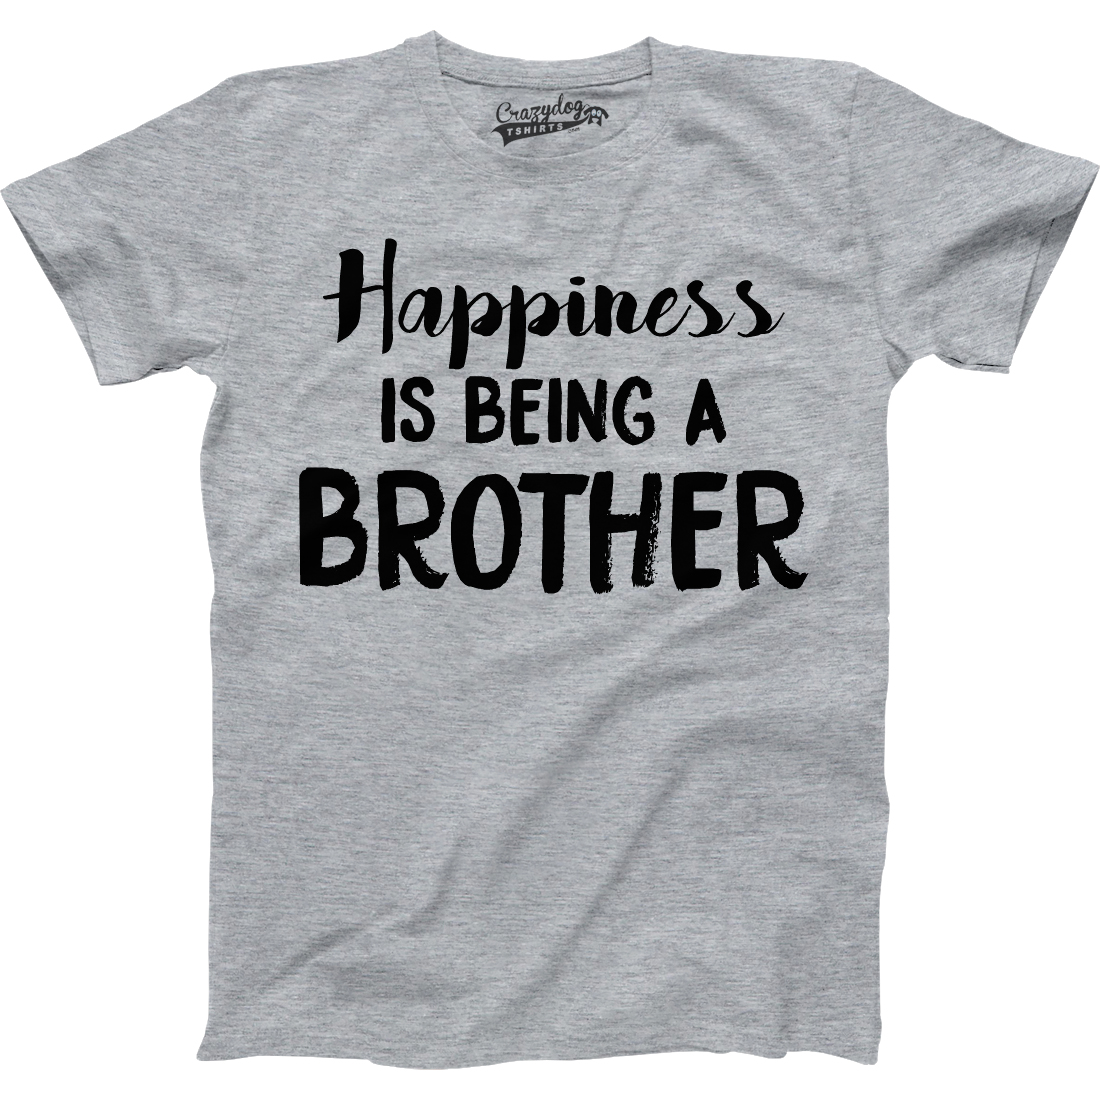 Crazy Dog TShirts - Youth Happiness Is Being a Brother FunnT Shirts for Brothers Hilarious Novelty Family T shirt